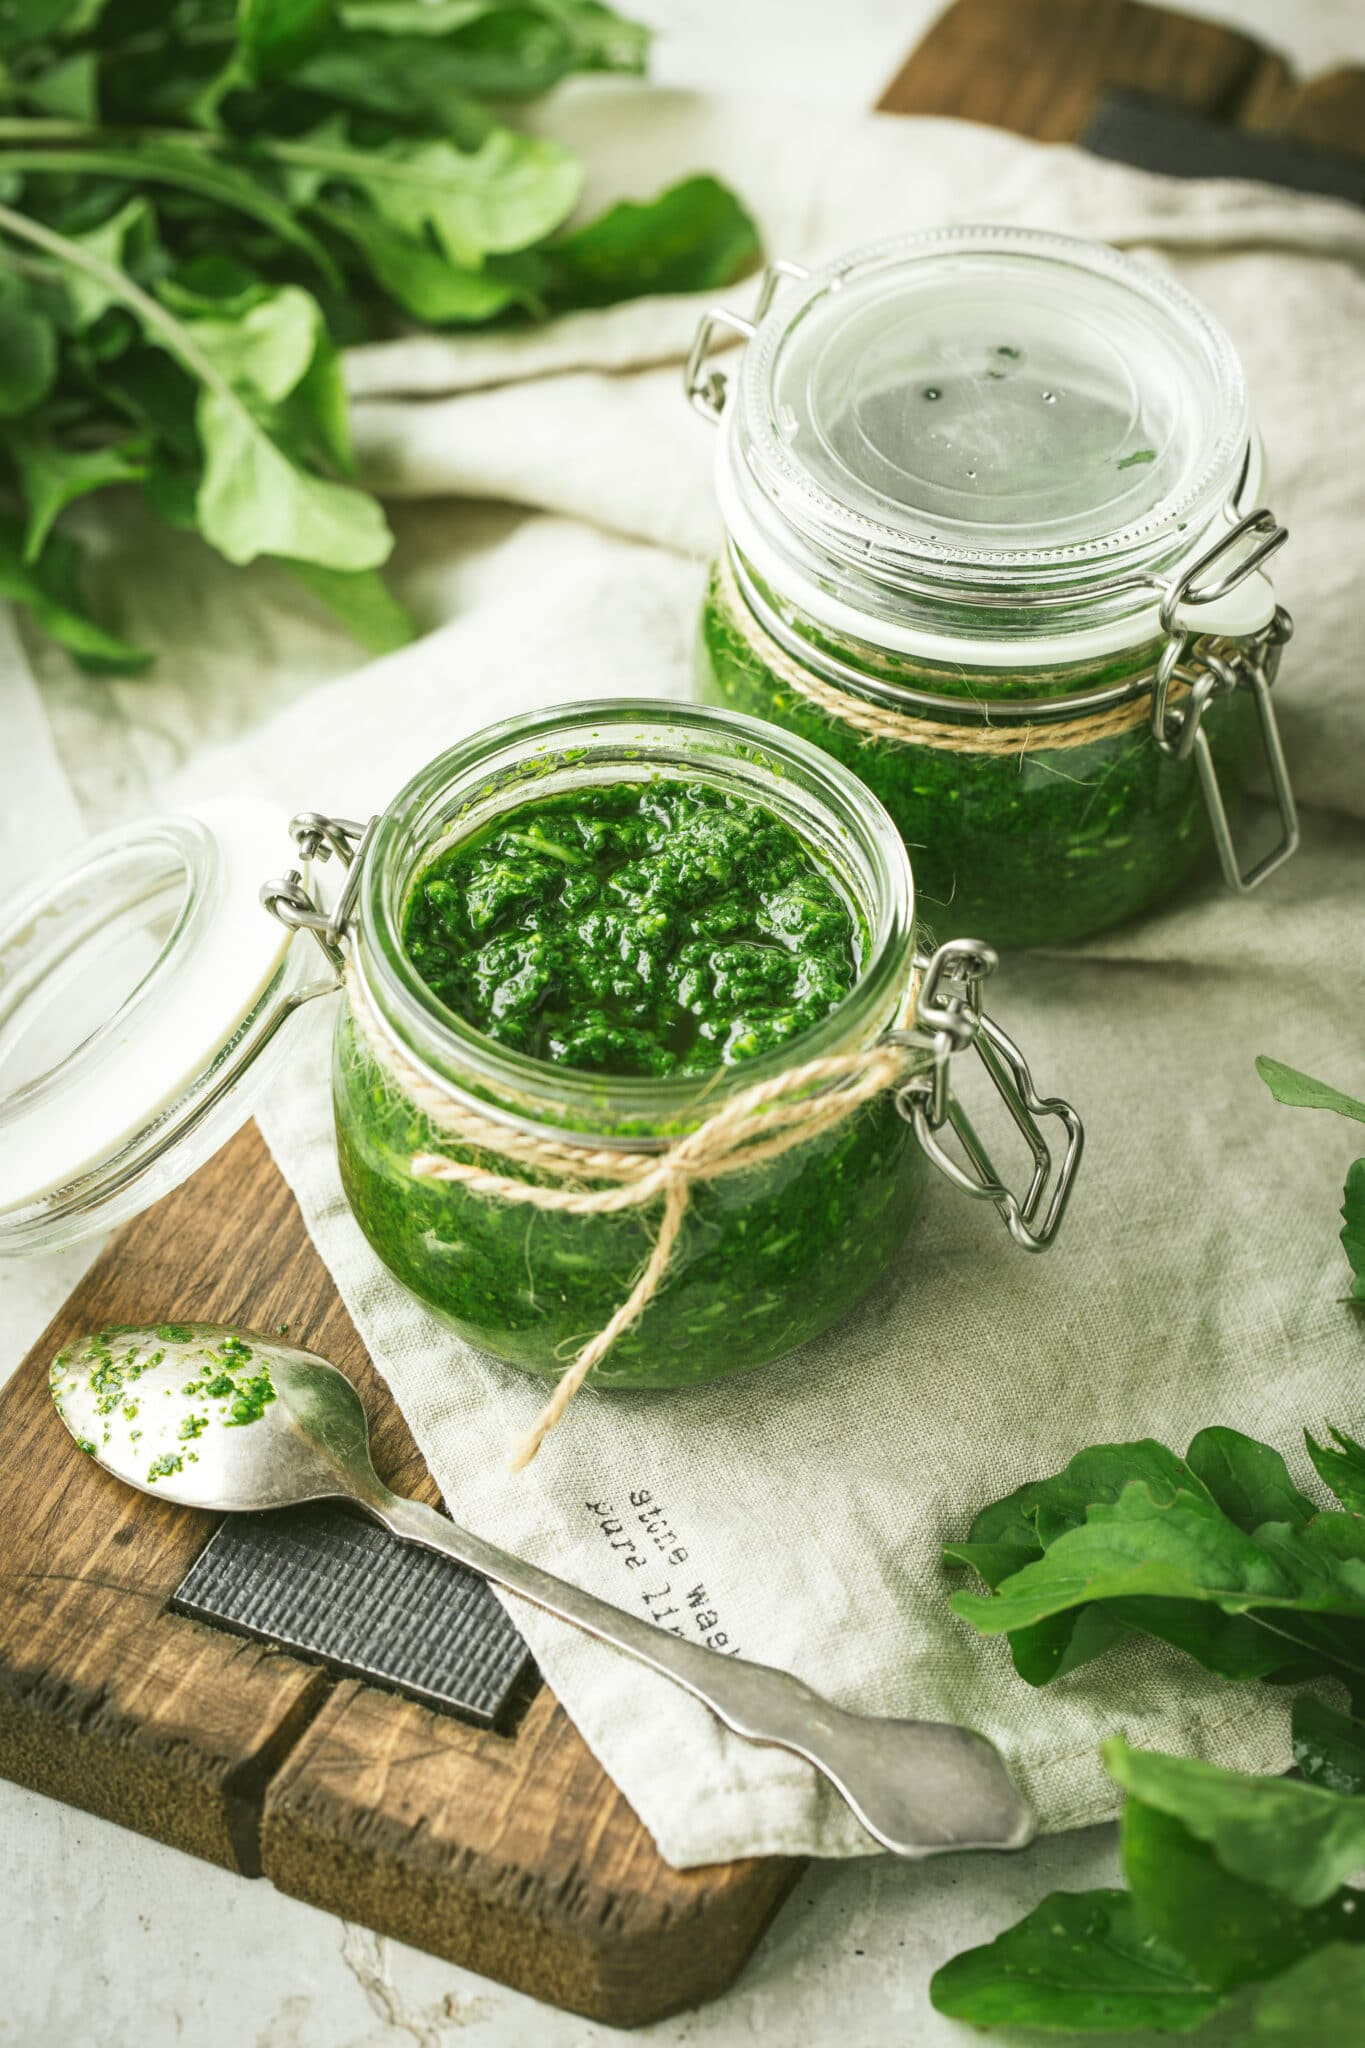 Jars of bright green homemade pest on a  rustic wooden cutting board with a linen napkin.  Fresh basil can be seen in the background.